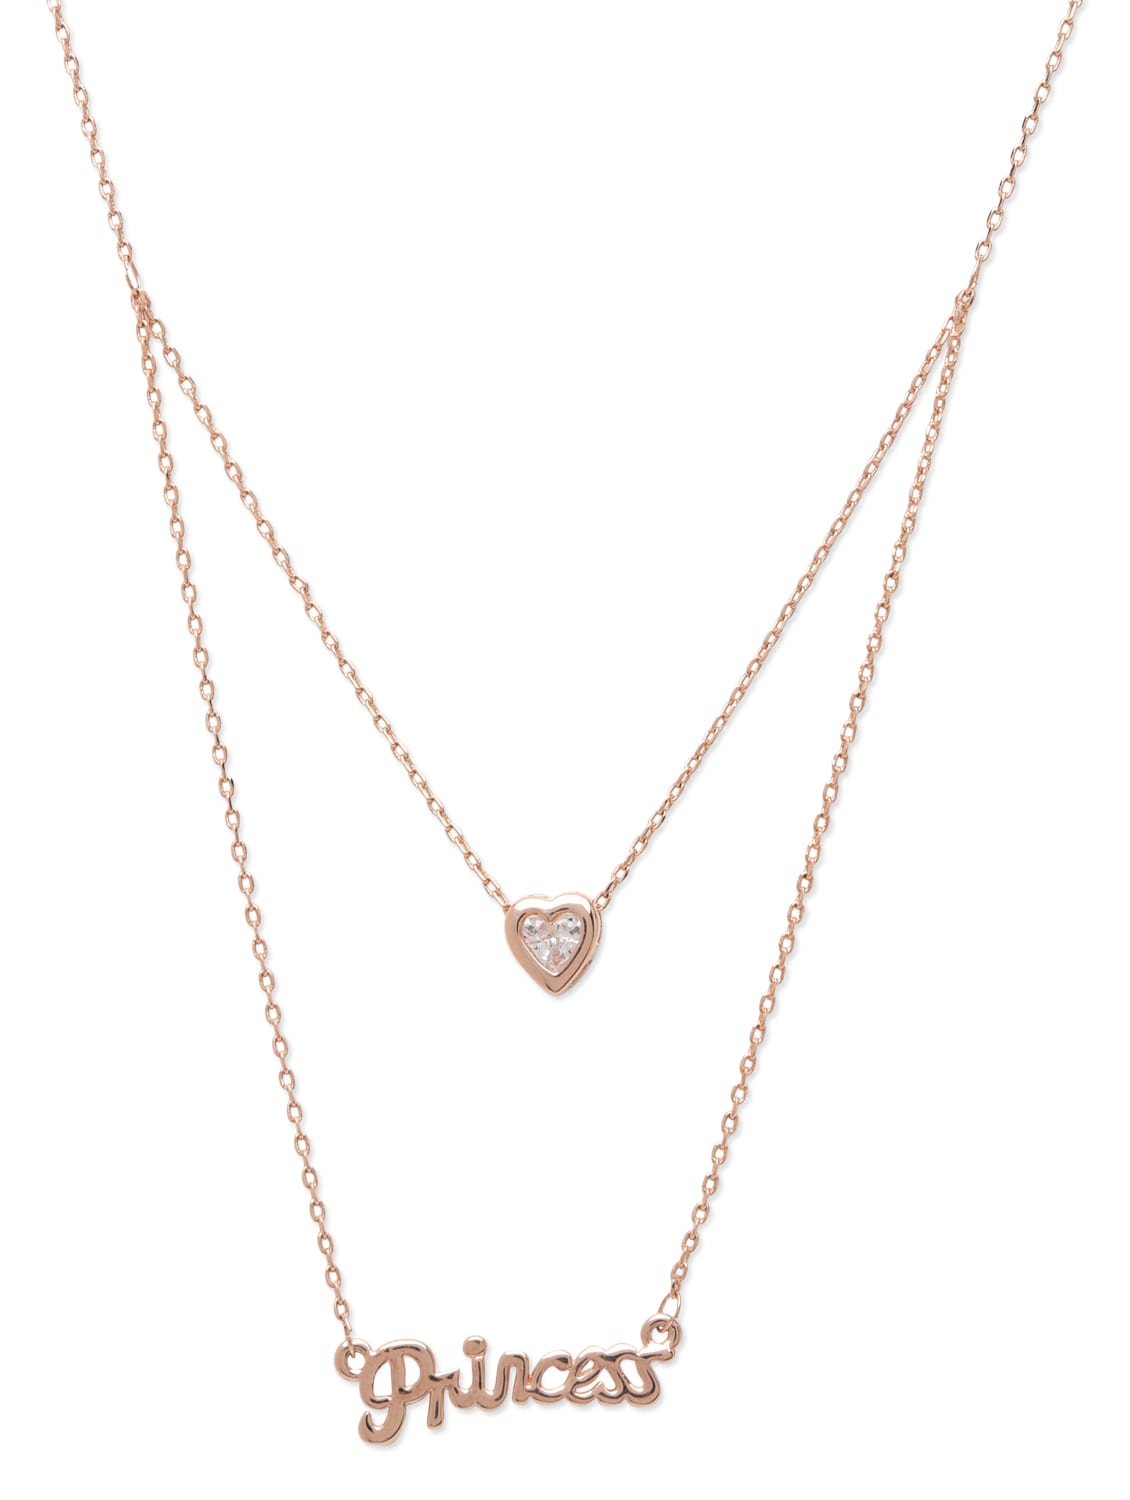 Rose 'princess' By Heart Gold And Necklace Layered Buy Pendant UCHqq